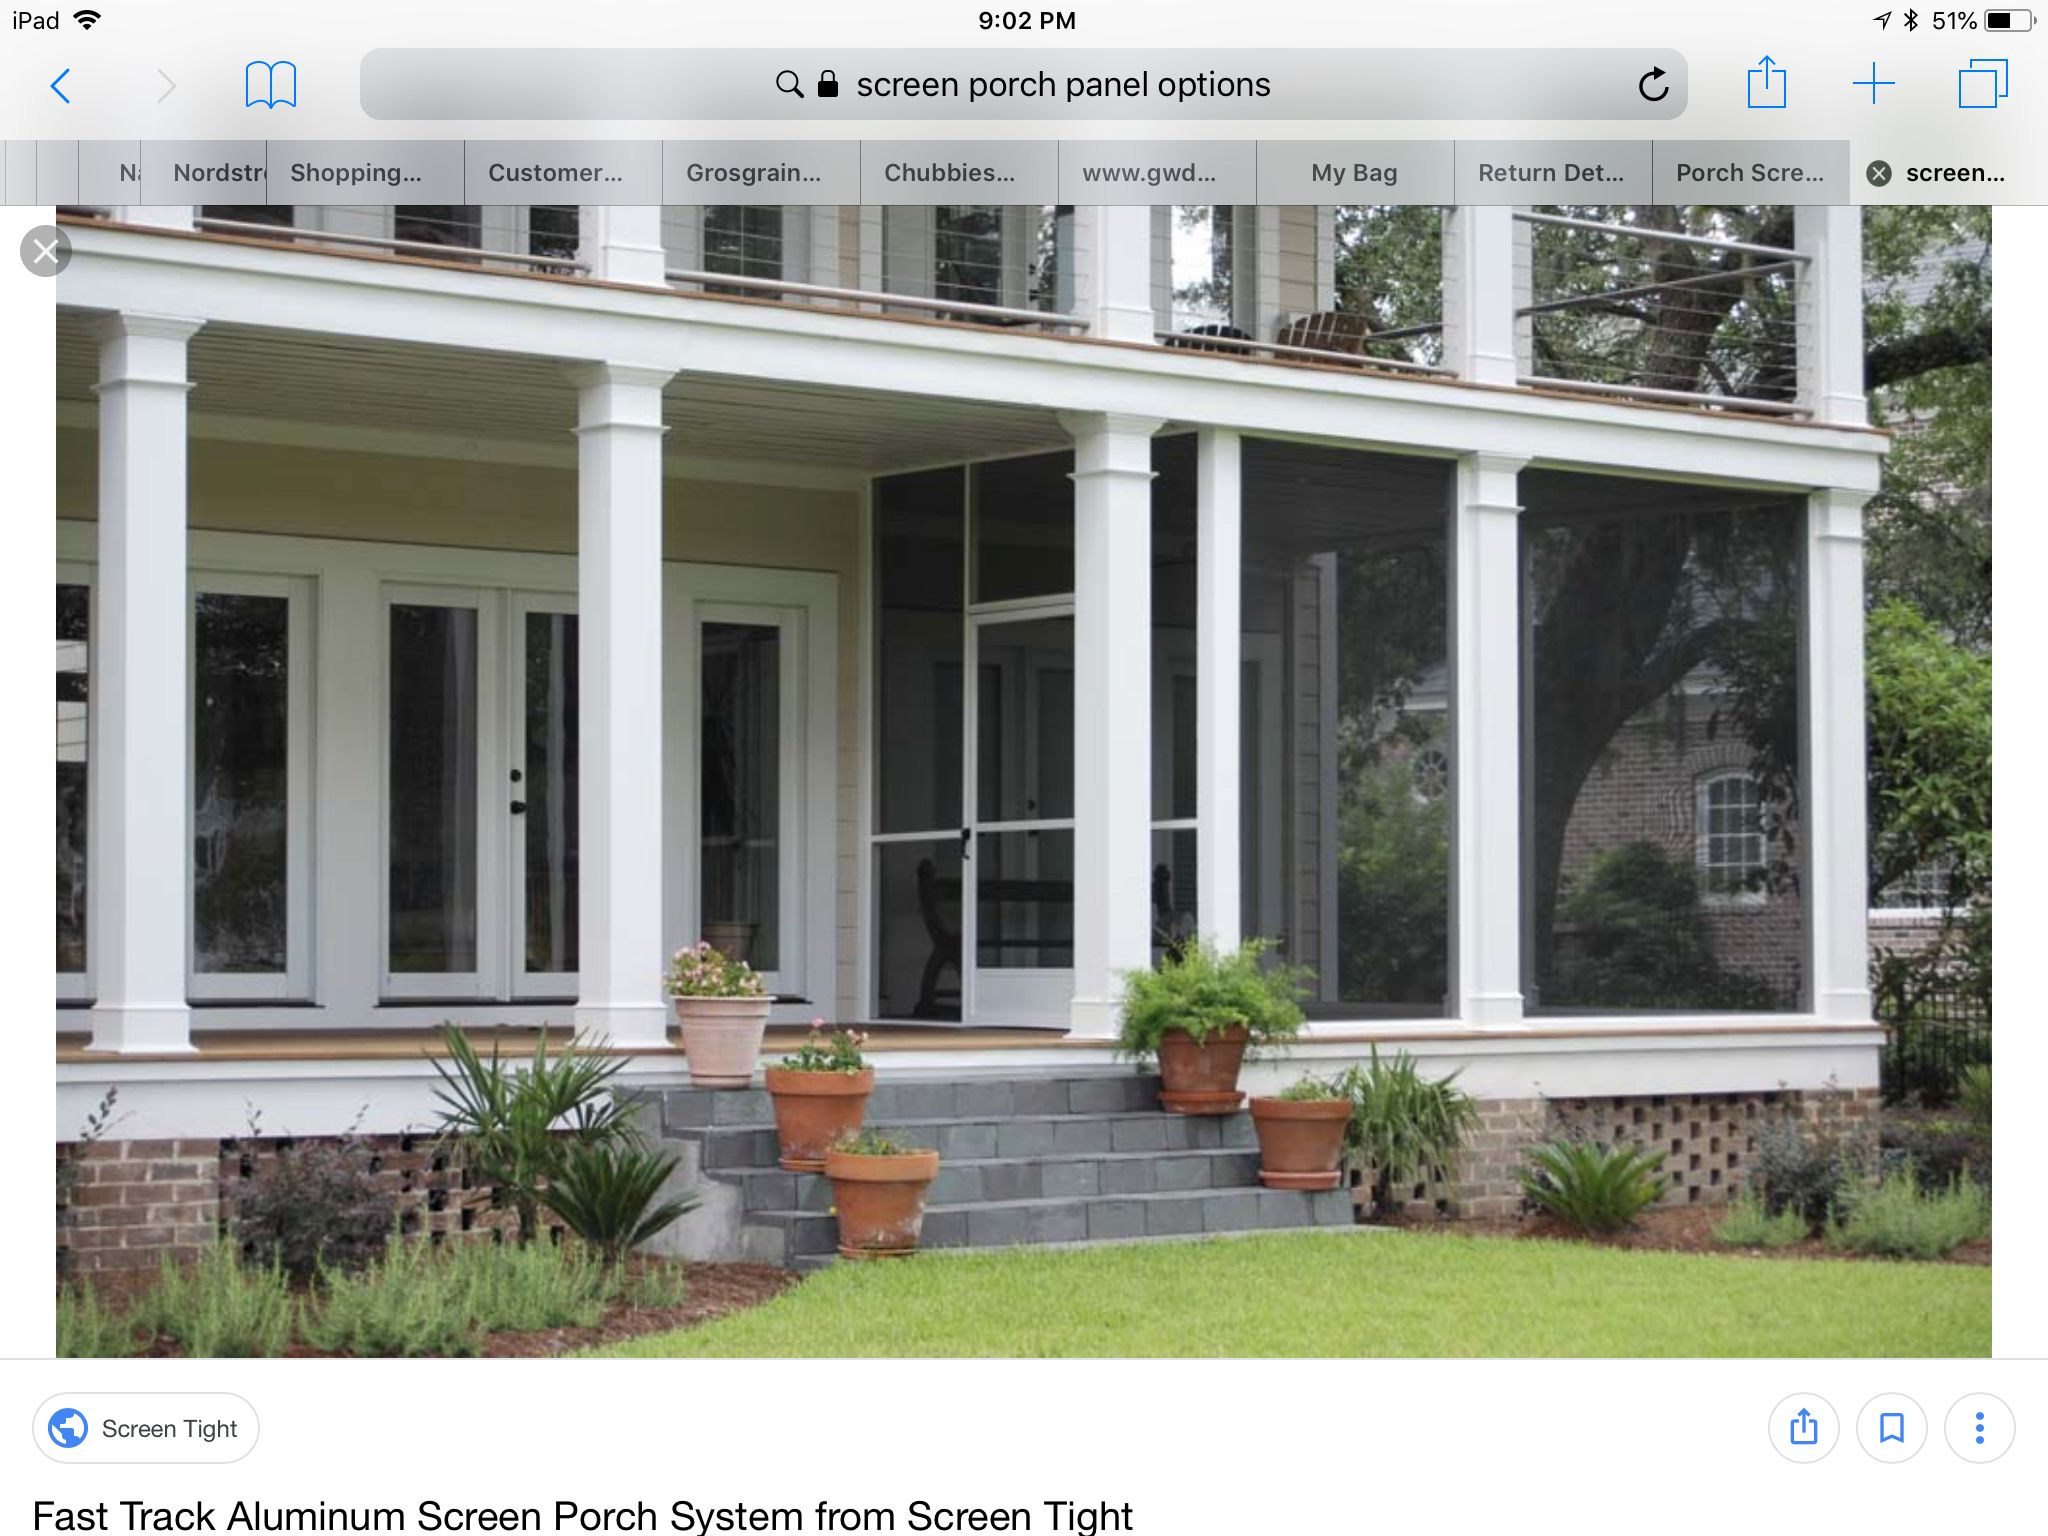 Pin by Tracy McCurry on Screen porch | Screen porch systems